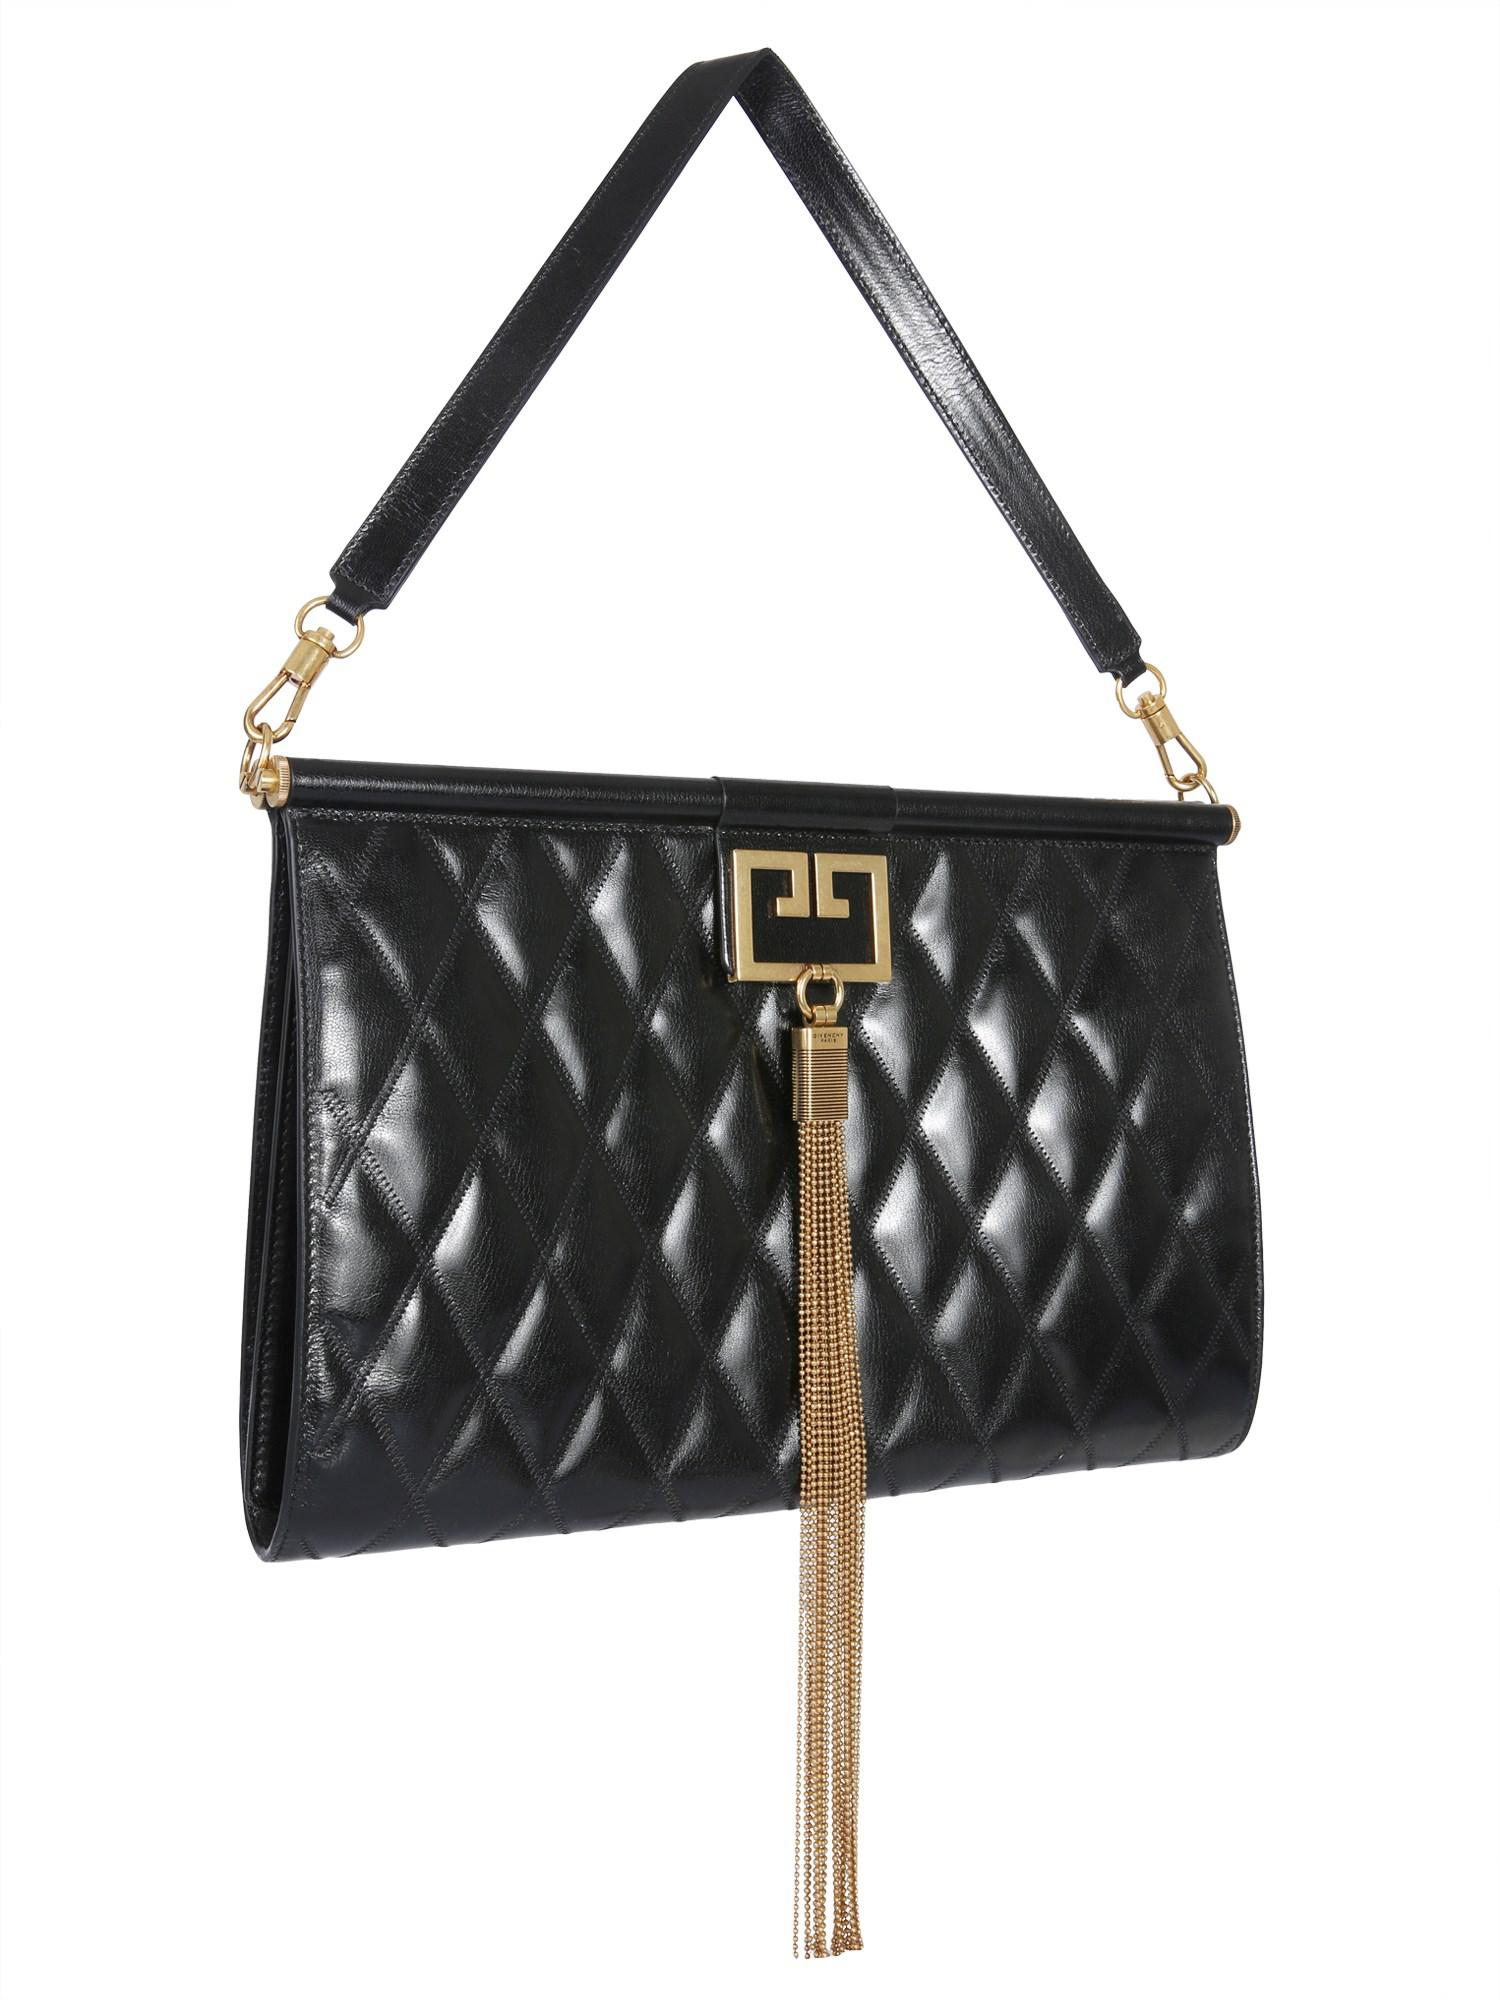 baba362bceb Lyst - Givenchy Large Quilted Leather Gem Bag in Black